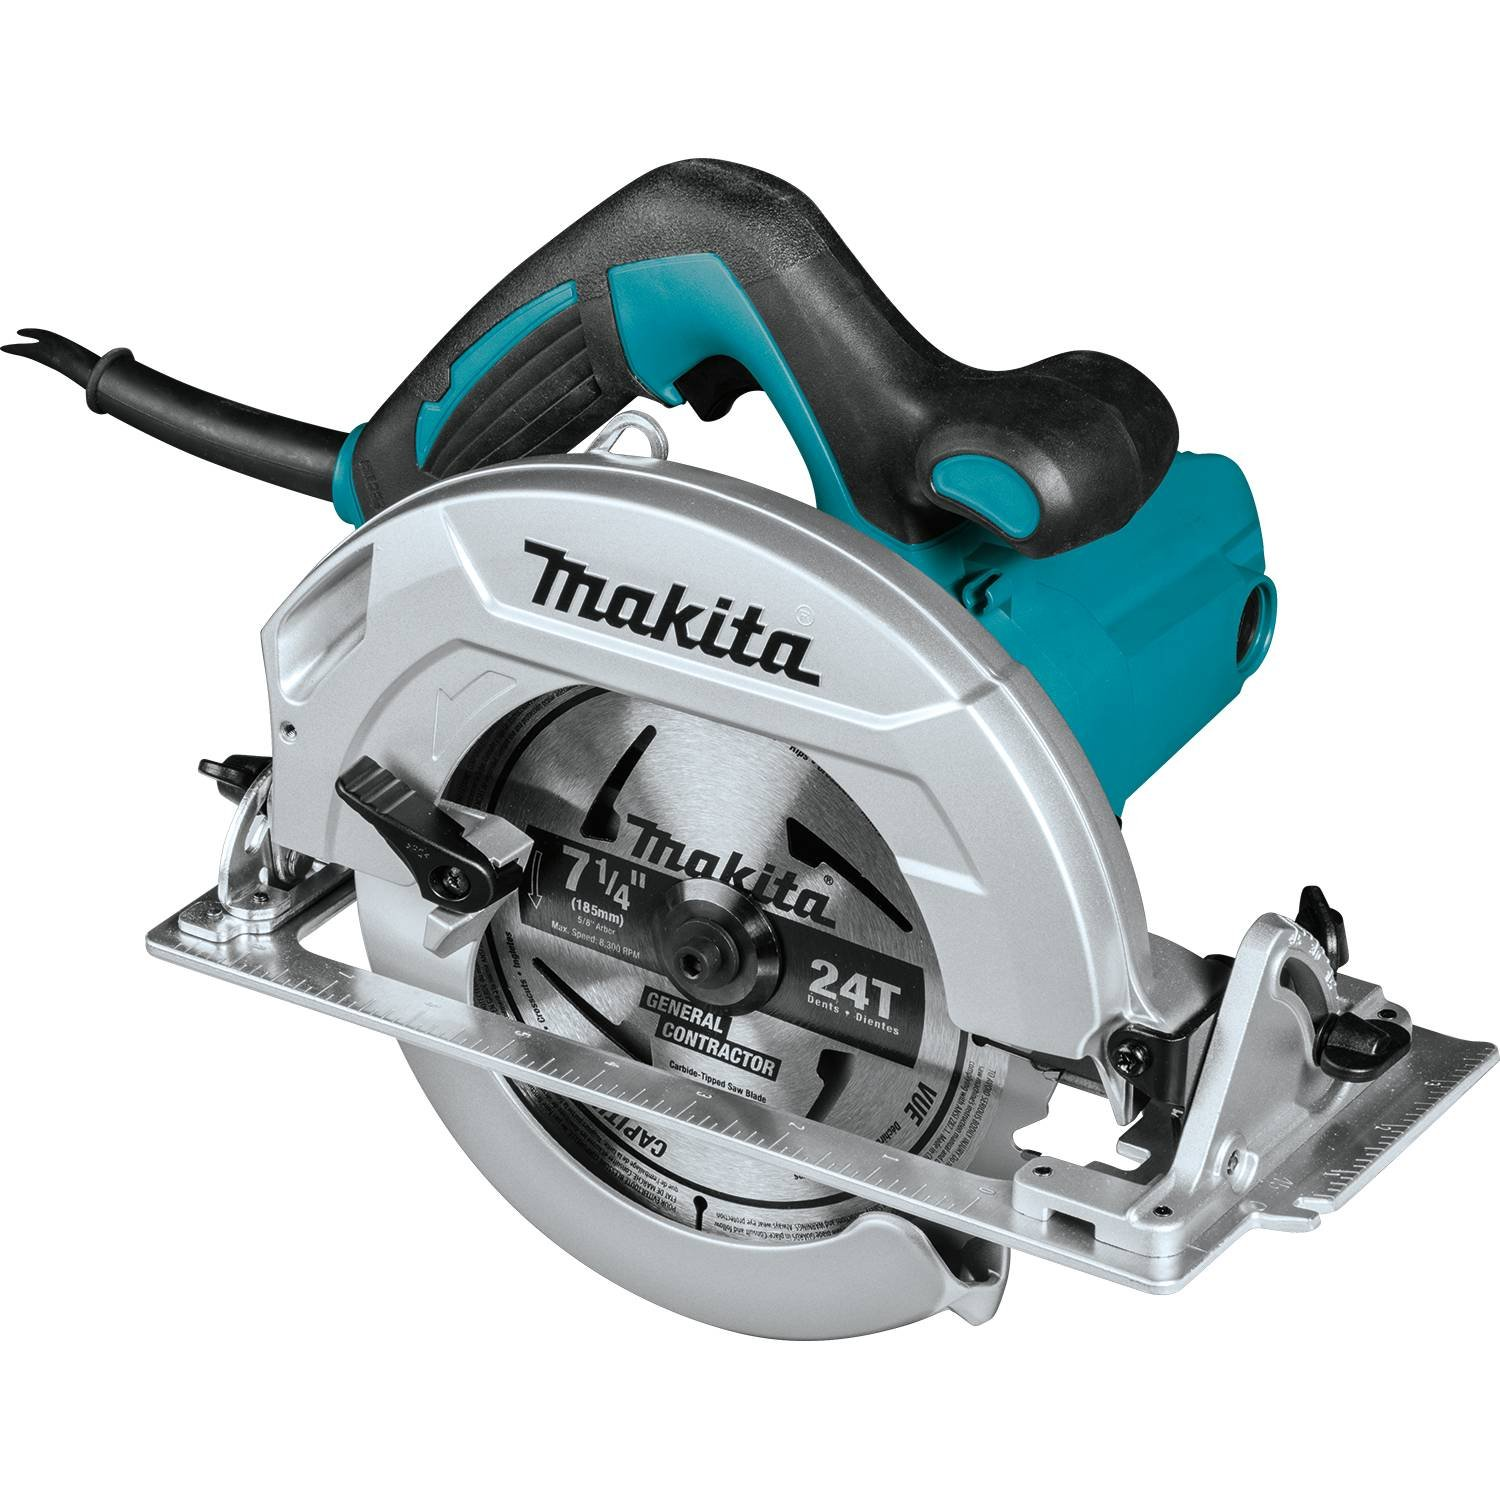 "Makita HS7610 7-1/4"" Circular Saw"